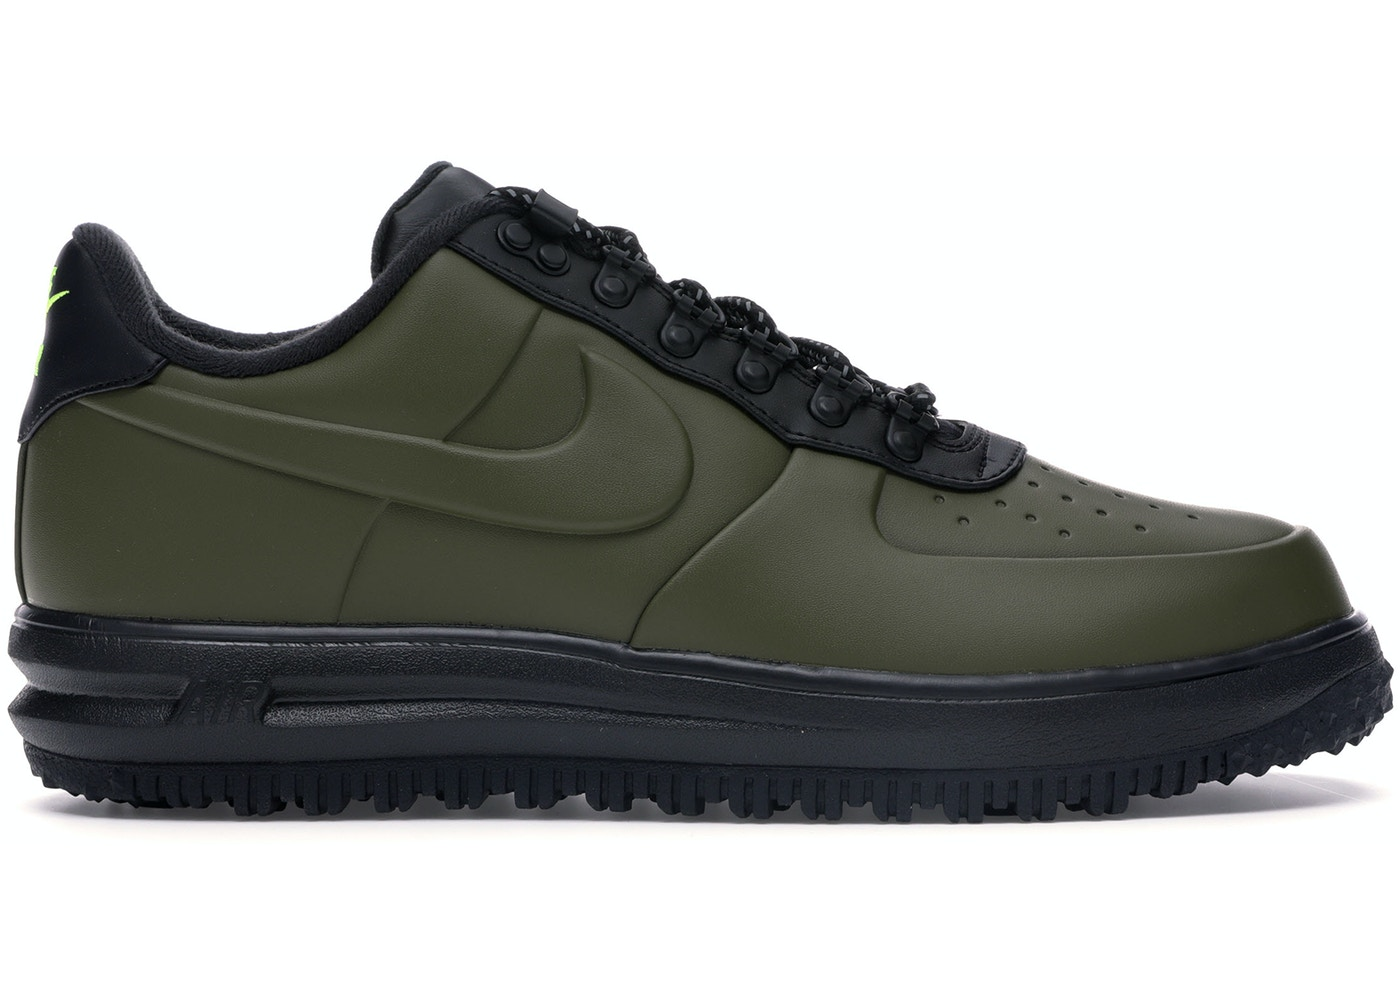 new concept 92a88 73320 Nike Lunar Force 1 Duckboot Low Olive Canvas